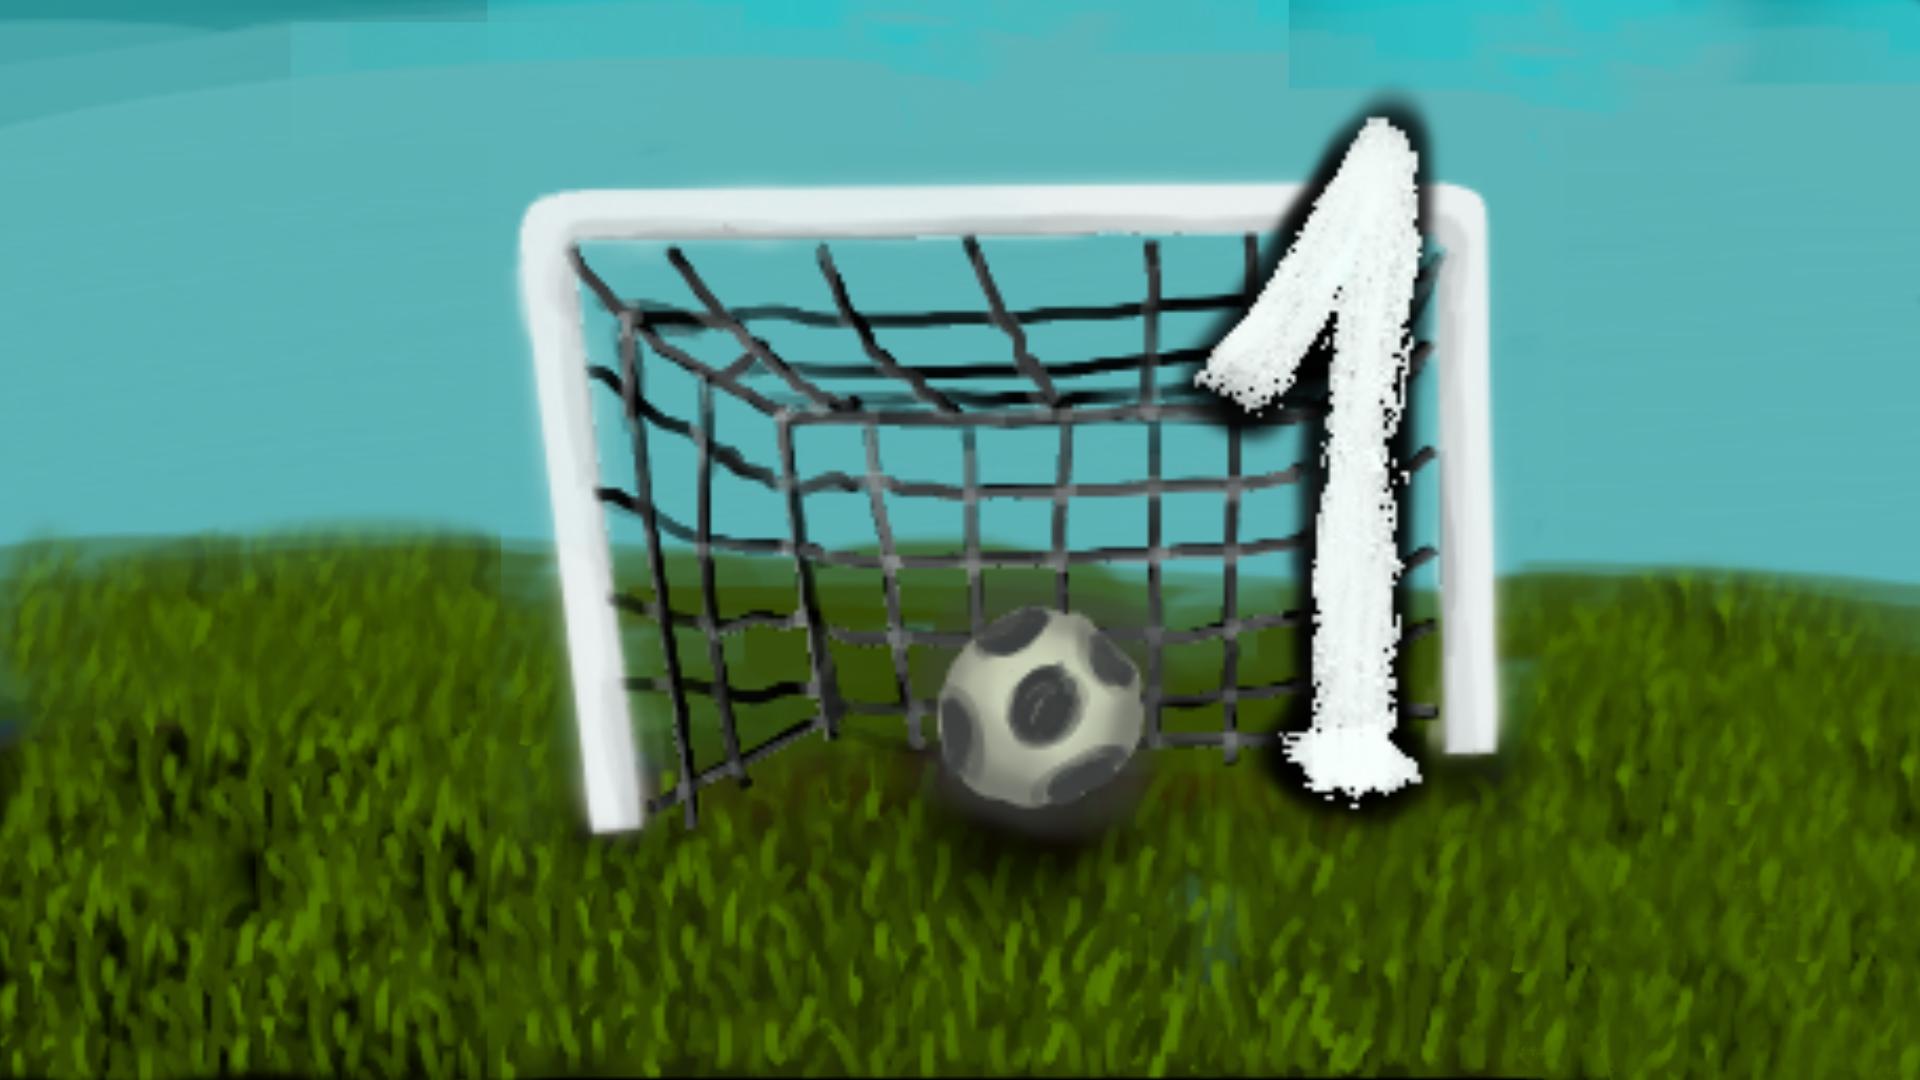 Icon for First goal scored.